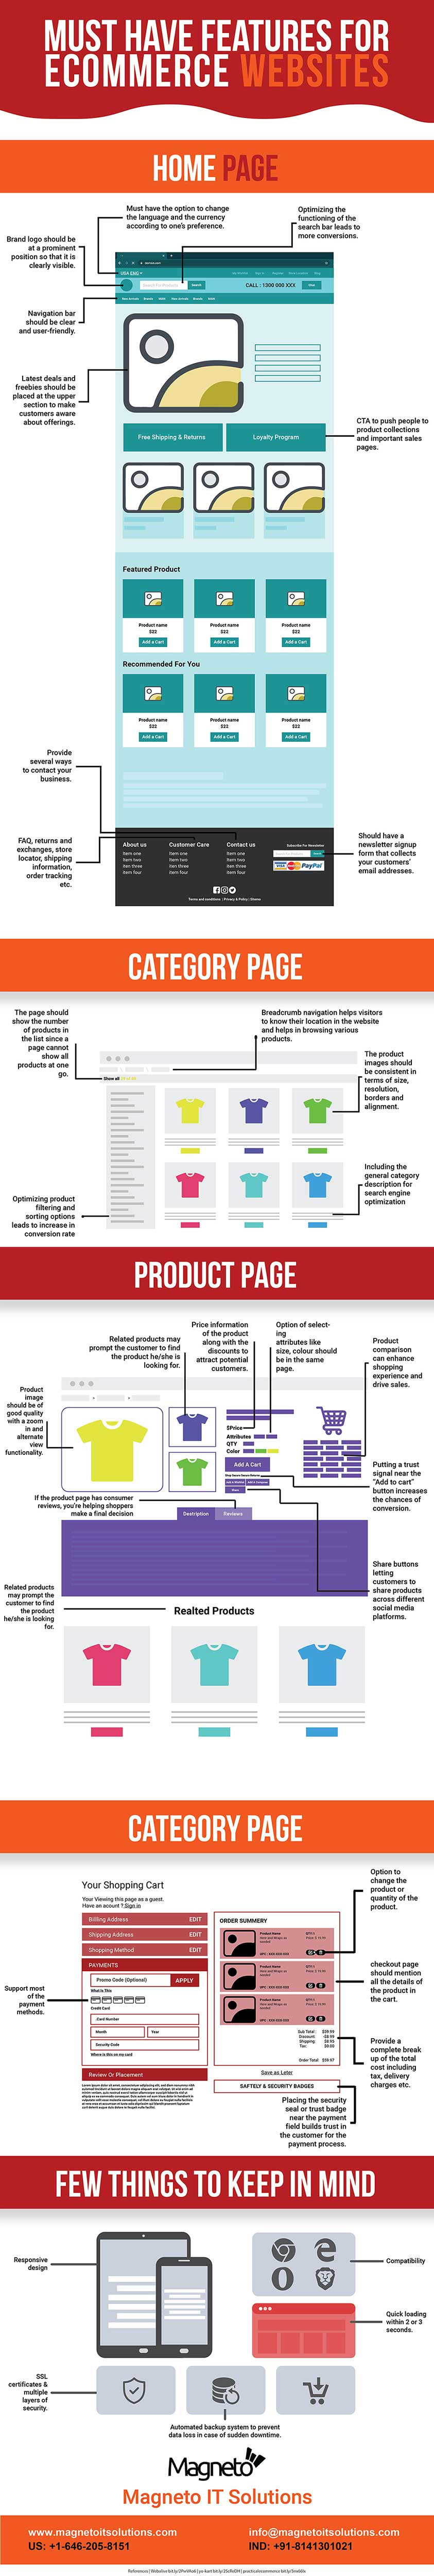 Must-Have-Features-For-eCommerce-Websites